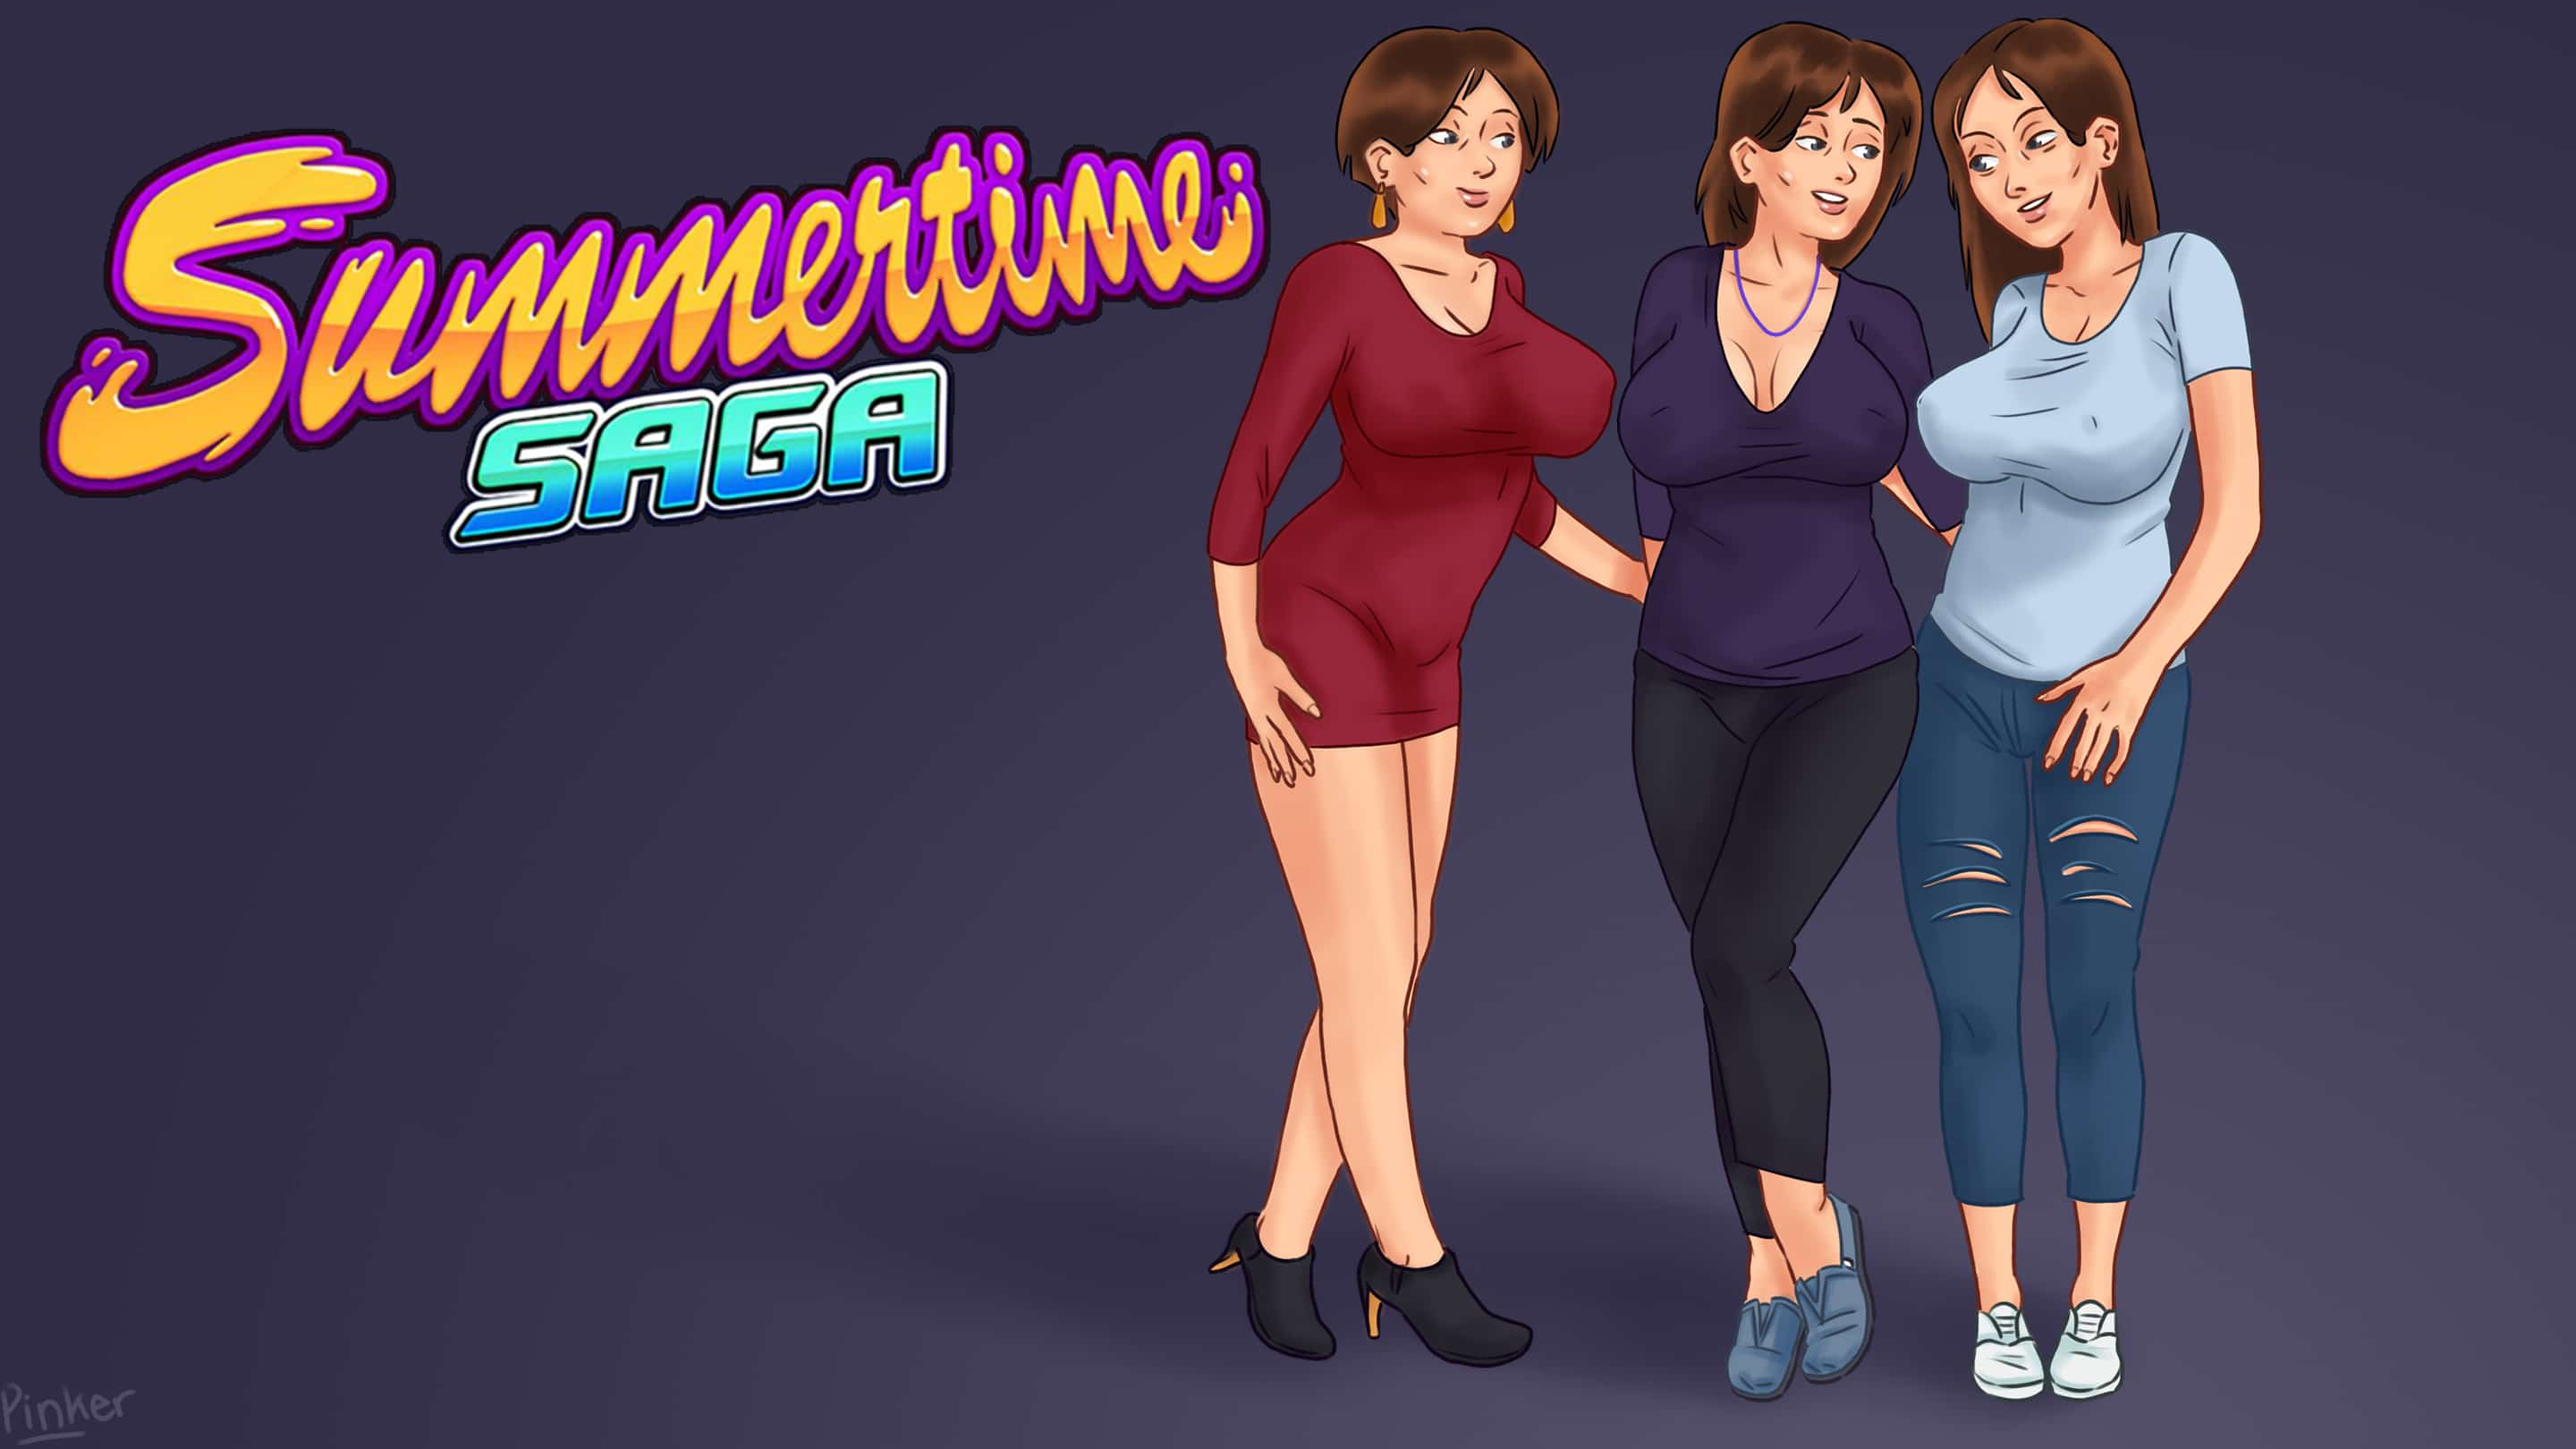 Adult Games Summertime Saga top 10 games like summertime saga that you don't know